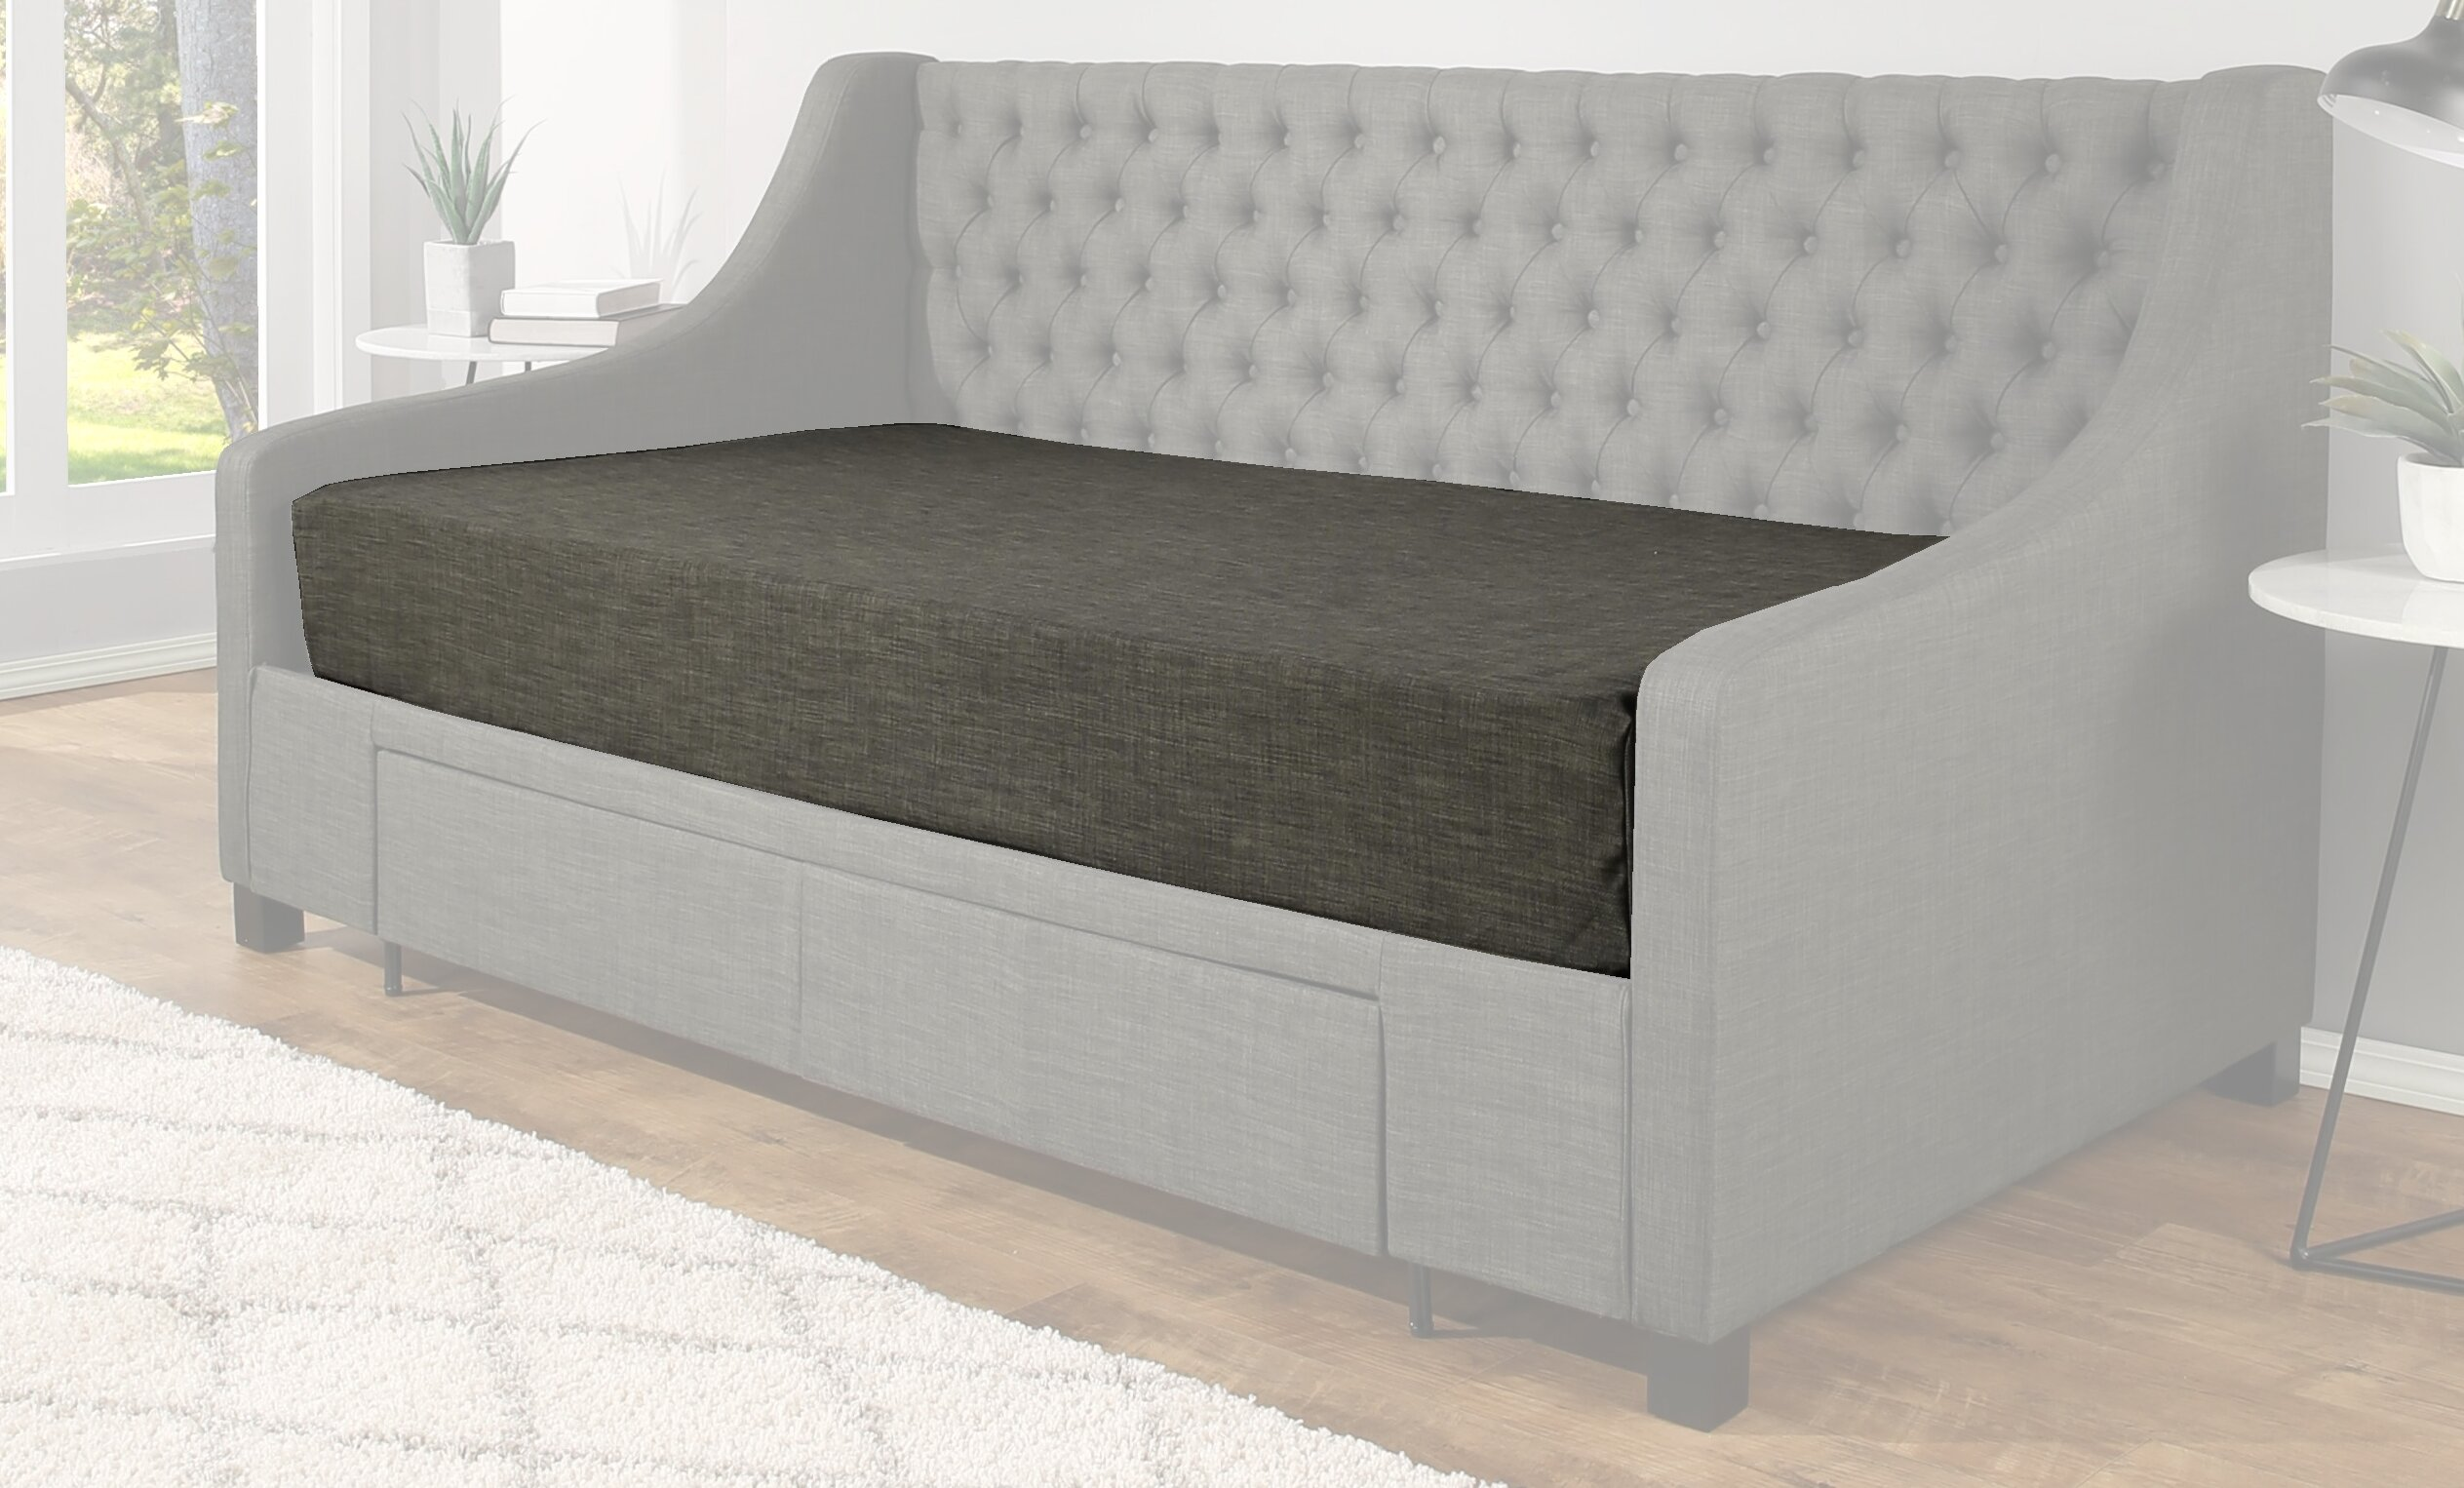 Arsuite Aron Daybed Fitted Mattress Protector & Reviews | Wayfair